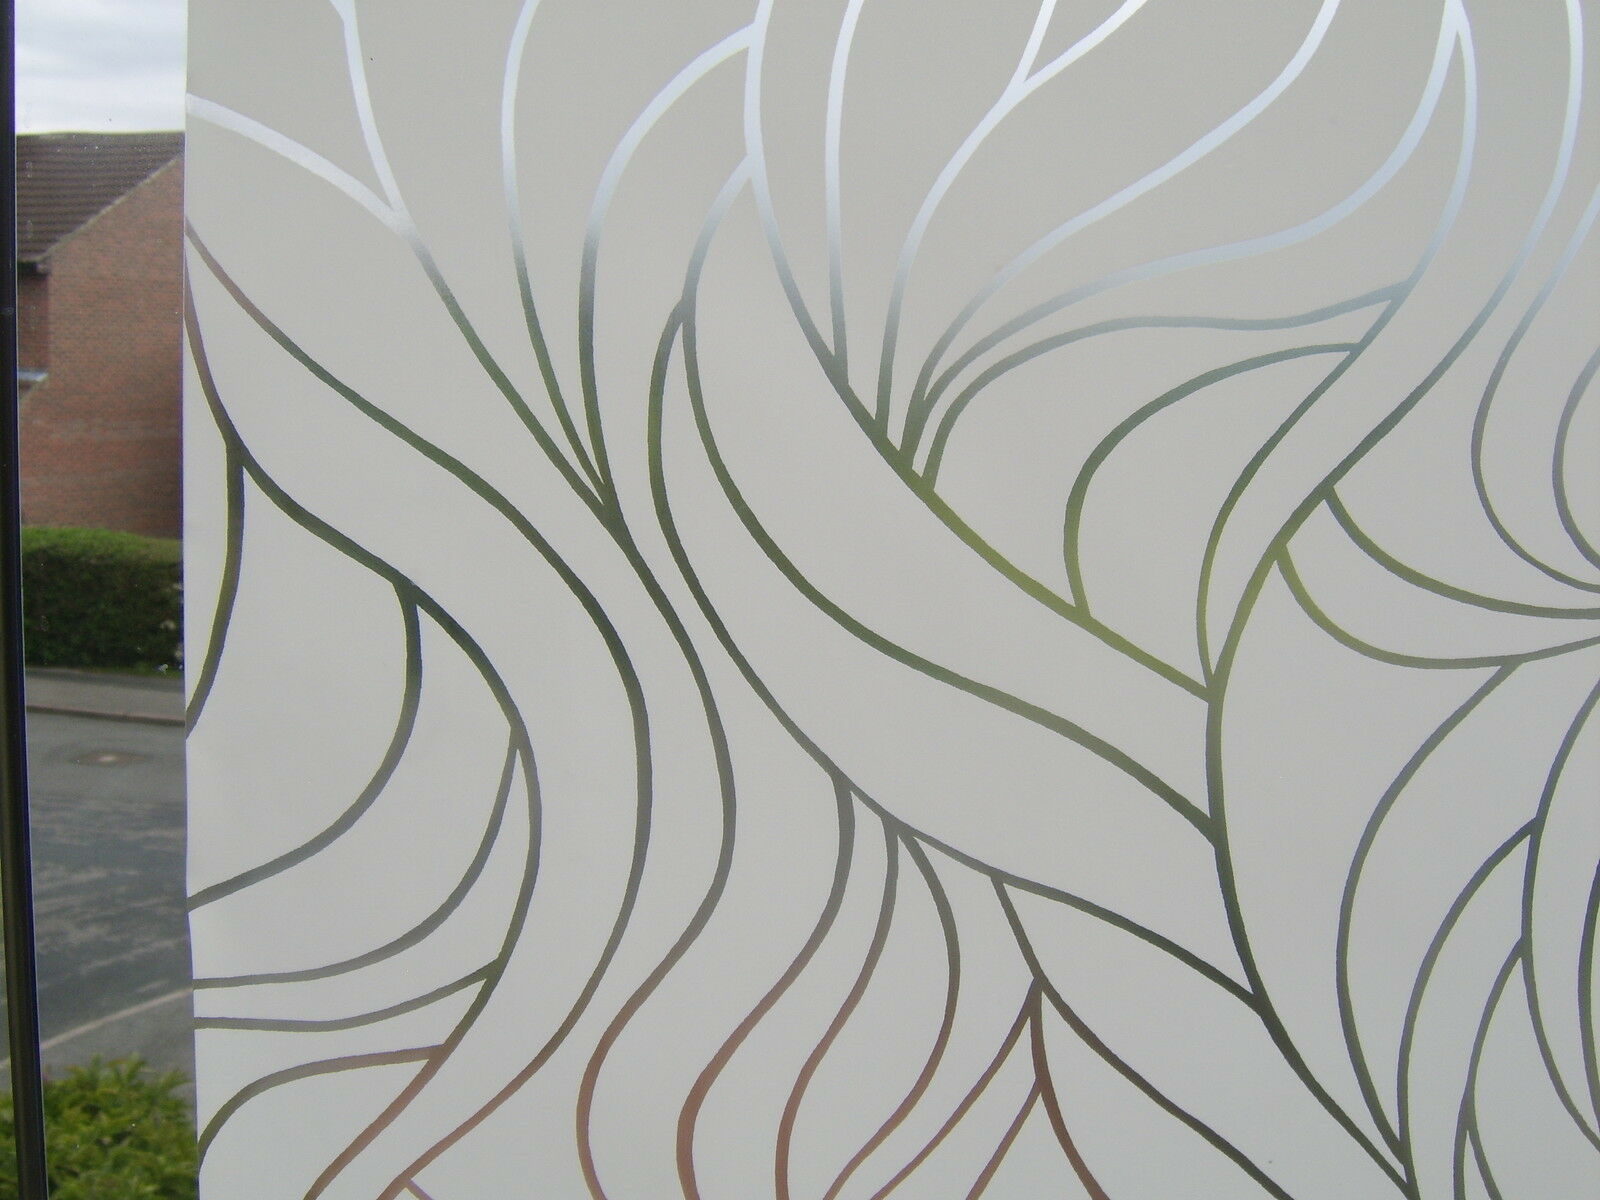 67 5cm W White Swirl Frosted Glass Effect Static Cling